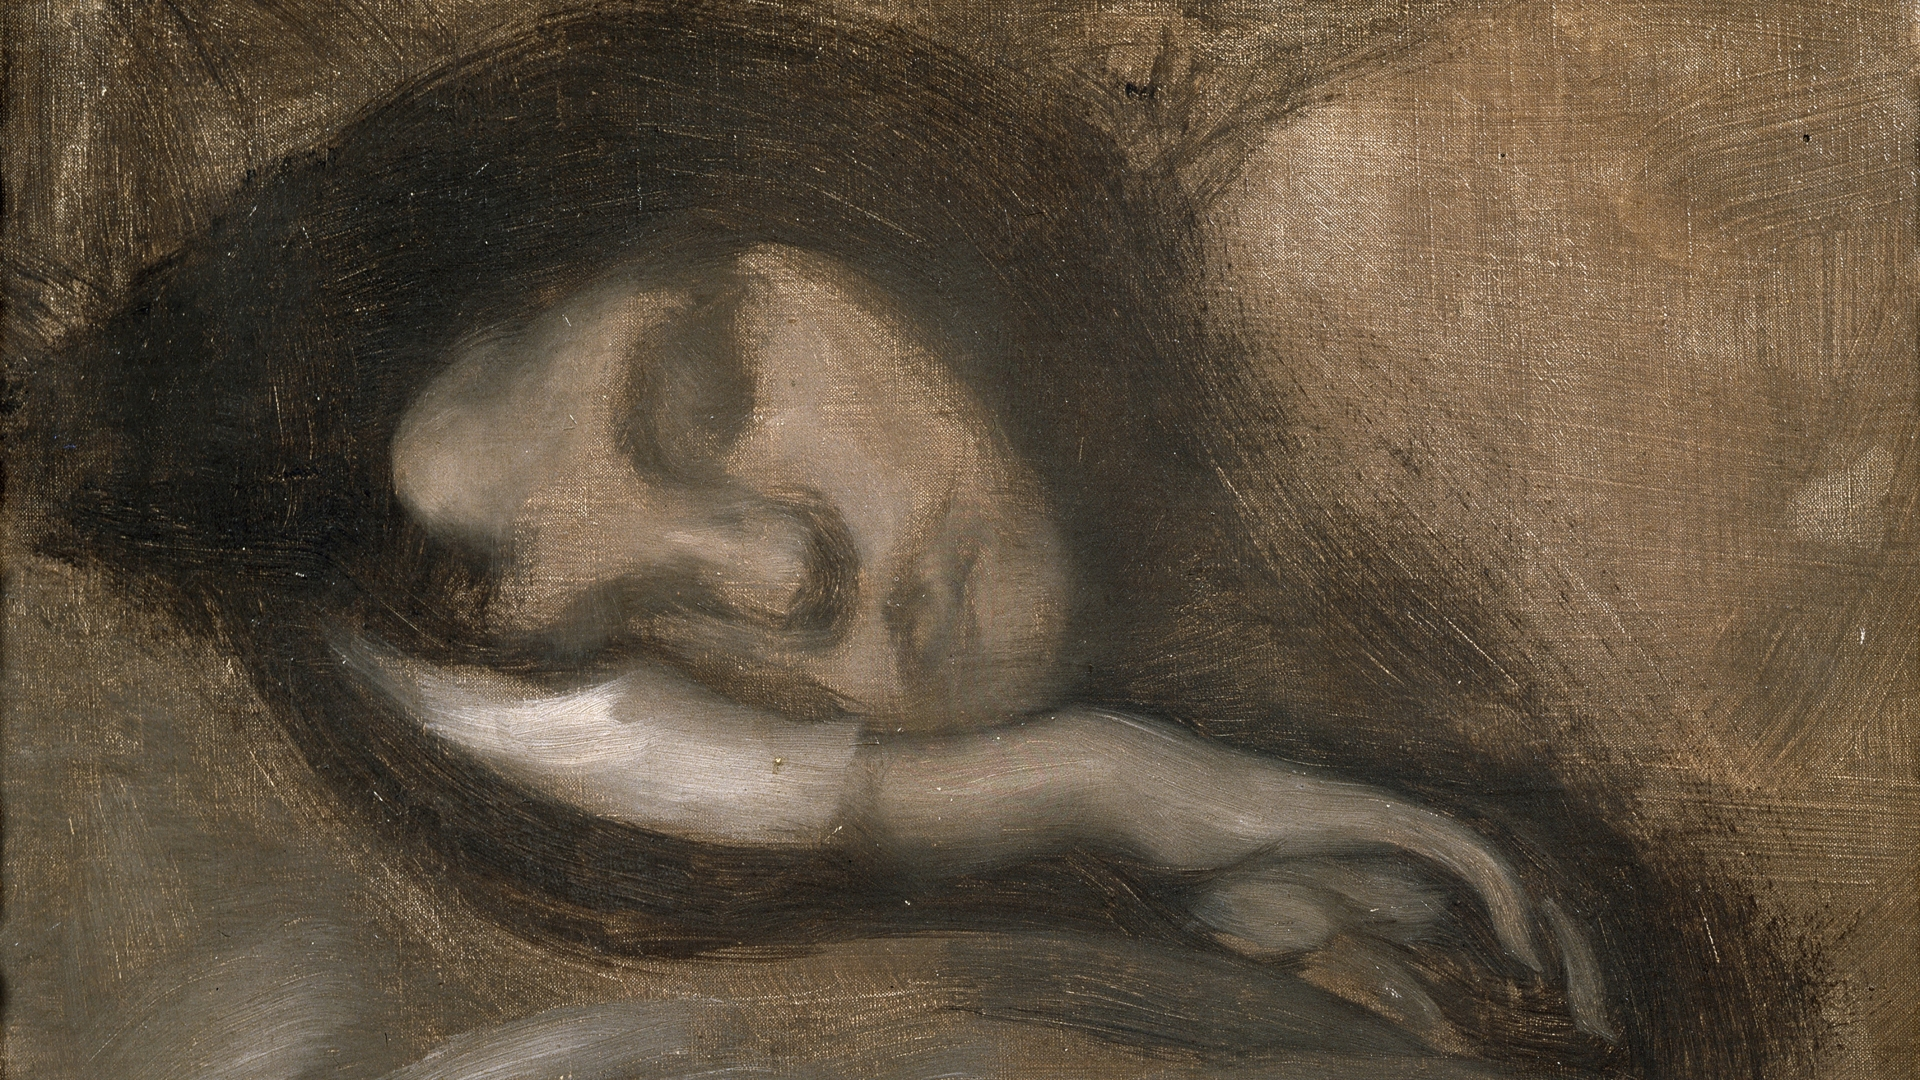 'Head of a Sleeping Woman', 19th century painting in the collection of the State A. Pushkin Museum of Fine Arts, Moscow. (Credit: Fine Art Images/Heritage Images/Getty Images)